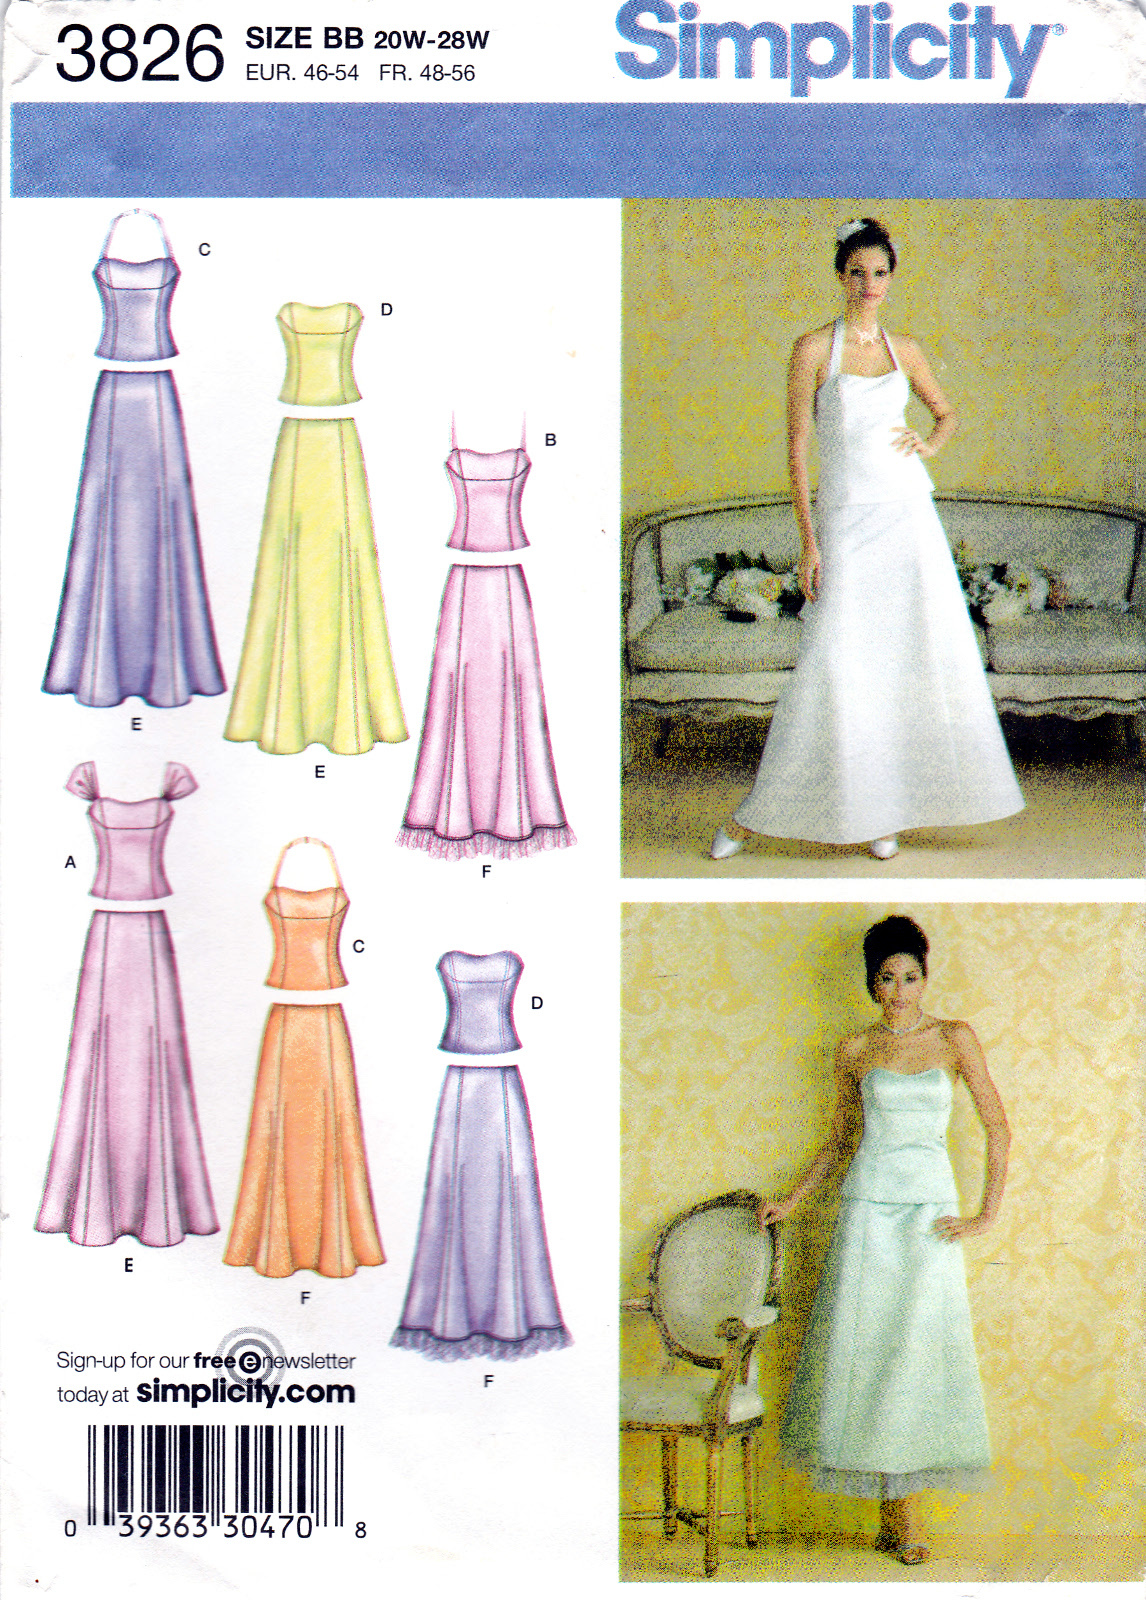 Simplicity 3826 Womens Sewing Pattern Formal Skirts with Tops Sizes 20W-28W